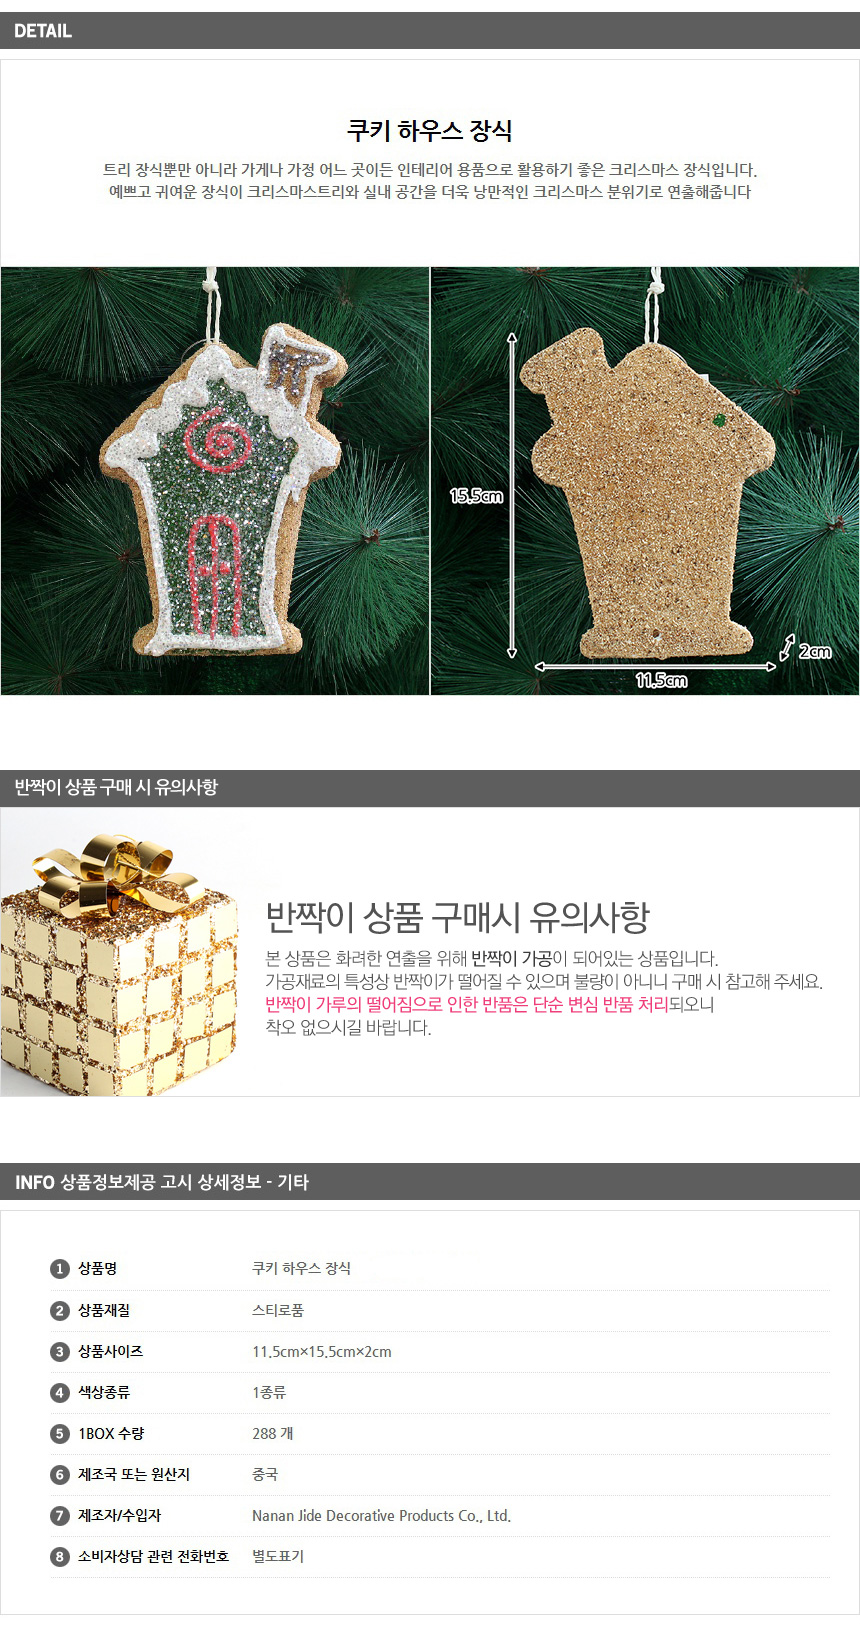 [ WINEQOK ] Christmas Goods / Cookie house decoration.